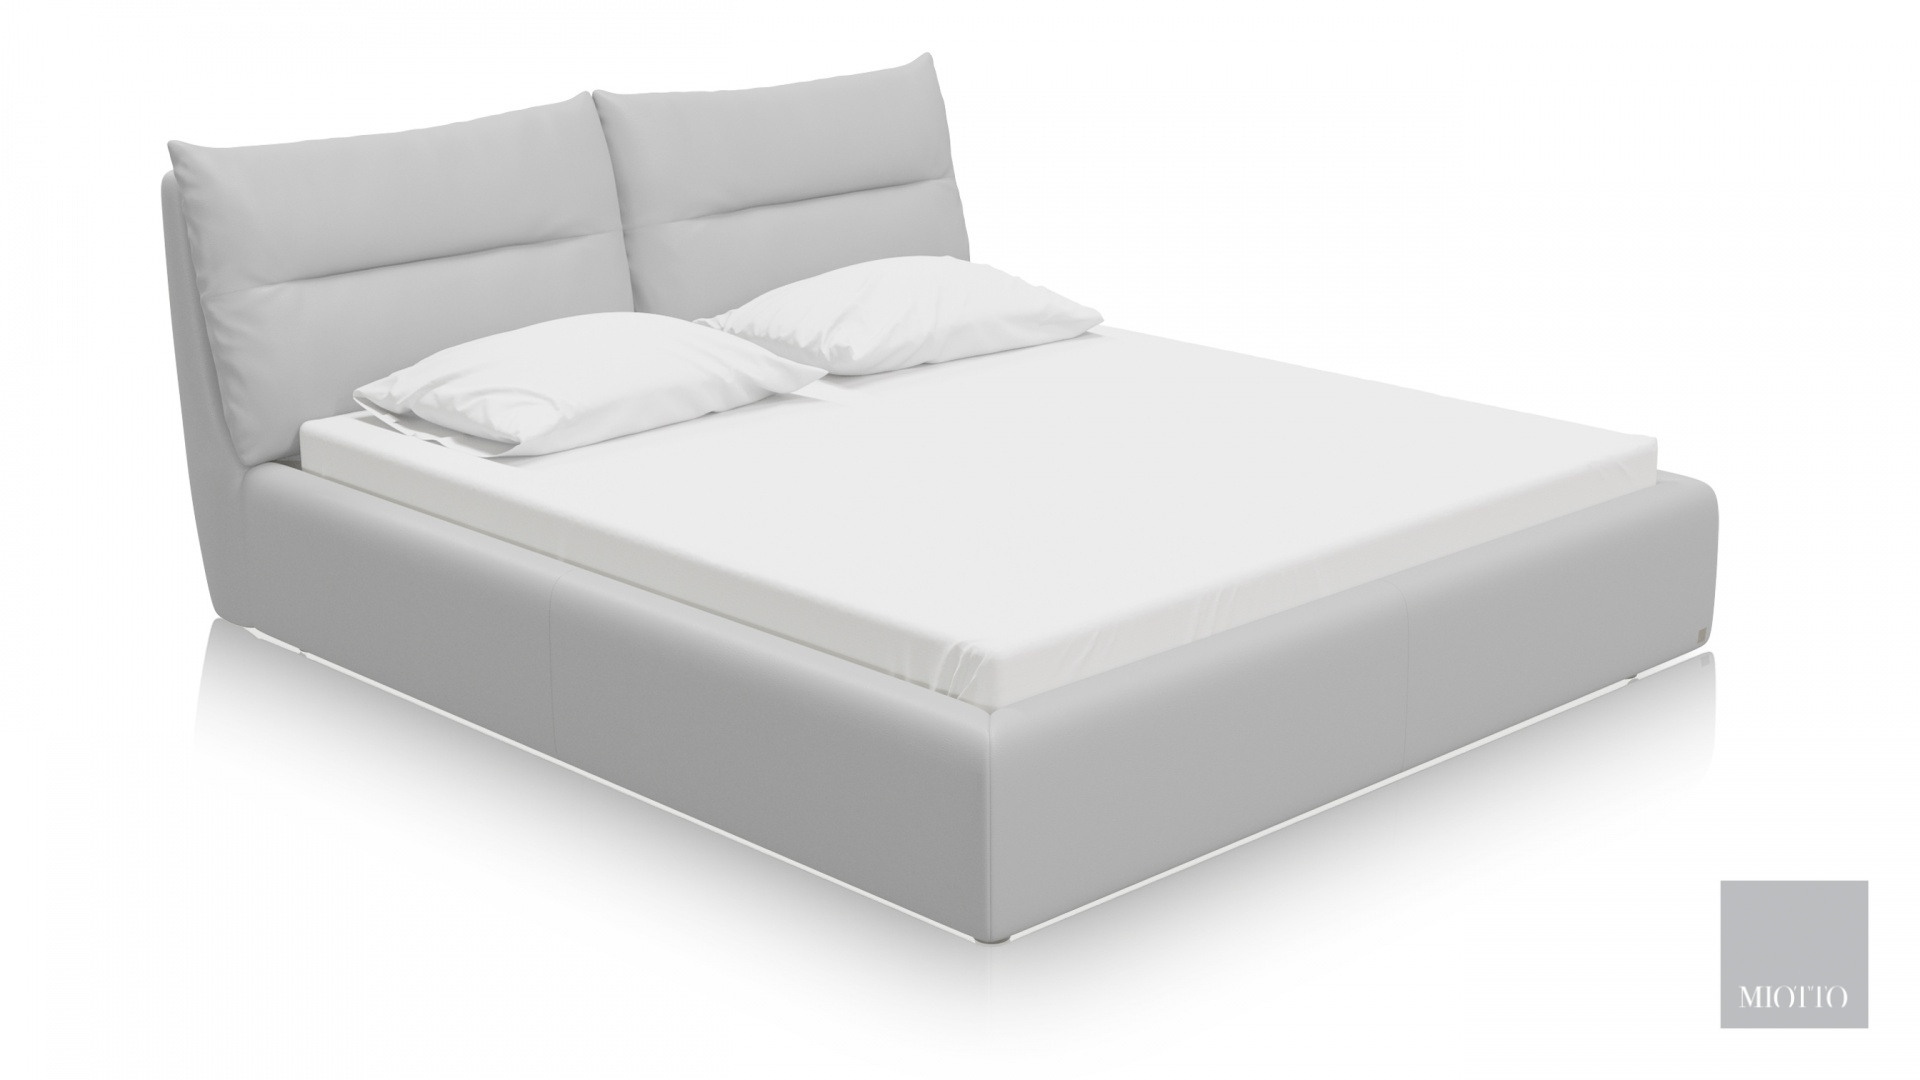 miotto_Marga bed white